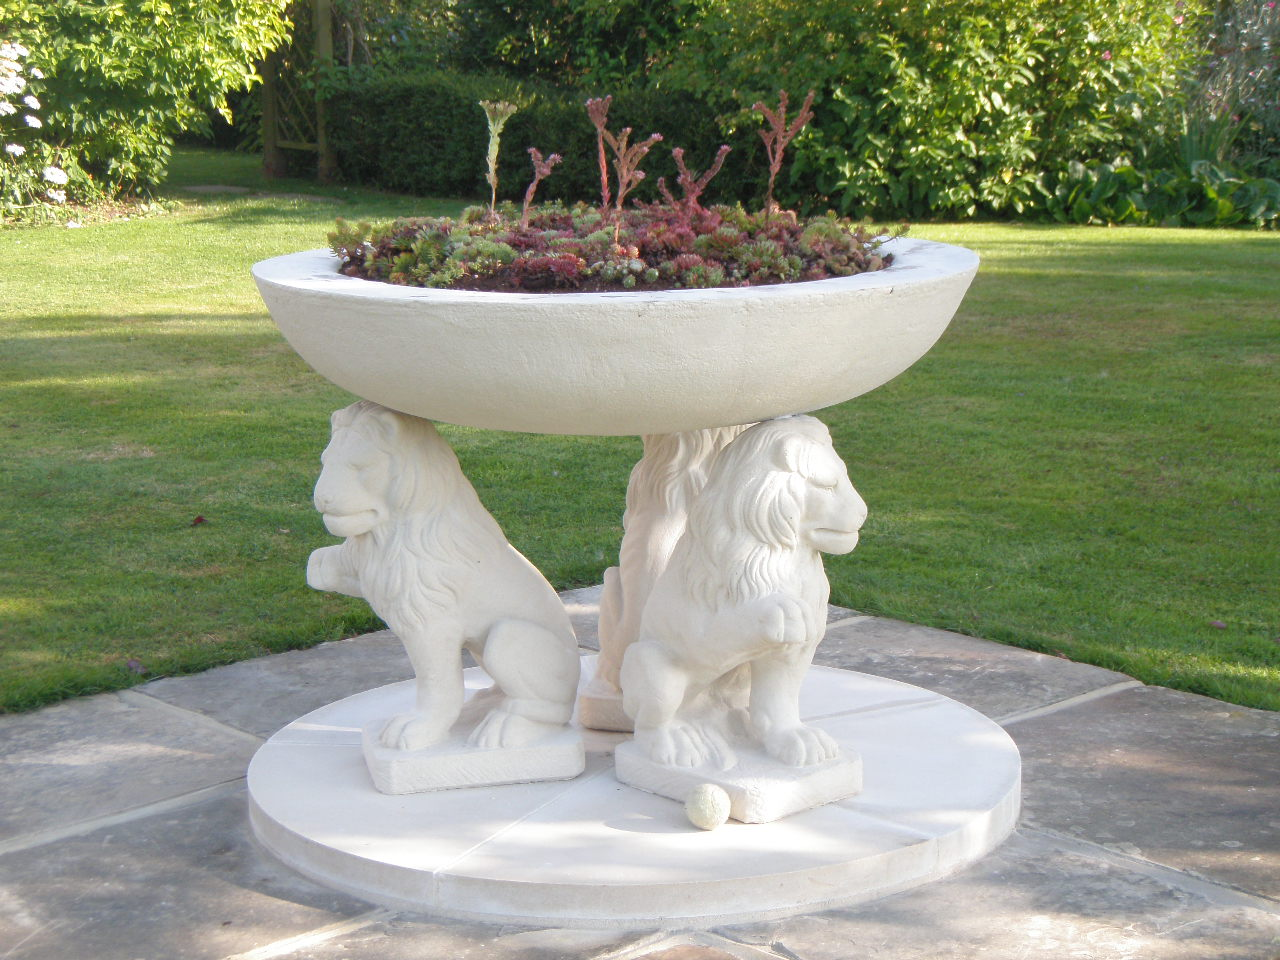 http://www.chilstone.com/garden-ornaments-category/sissinghurst-cast-stone-planter